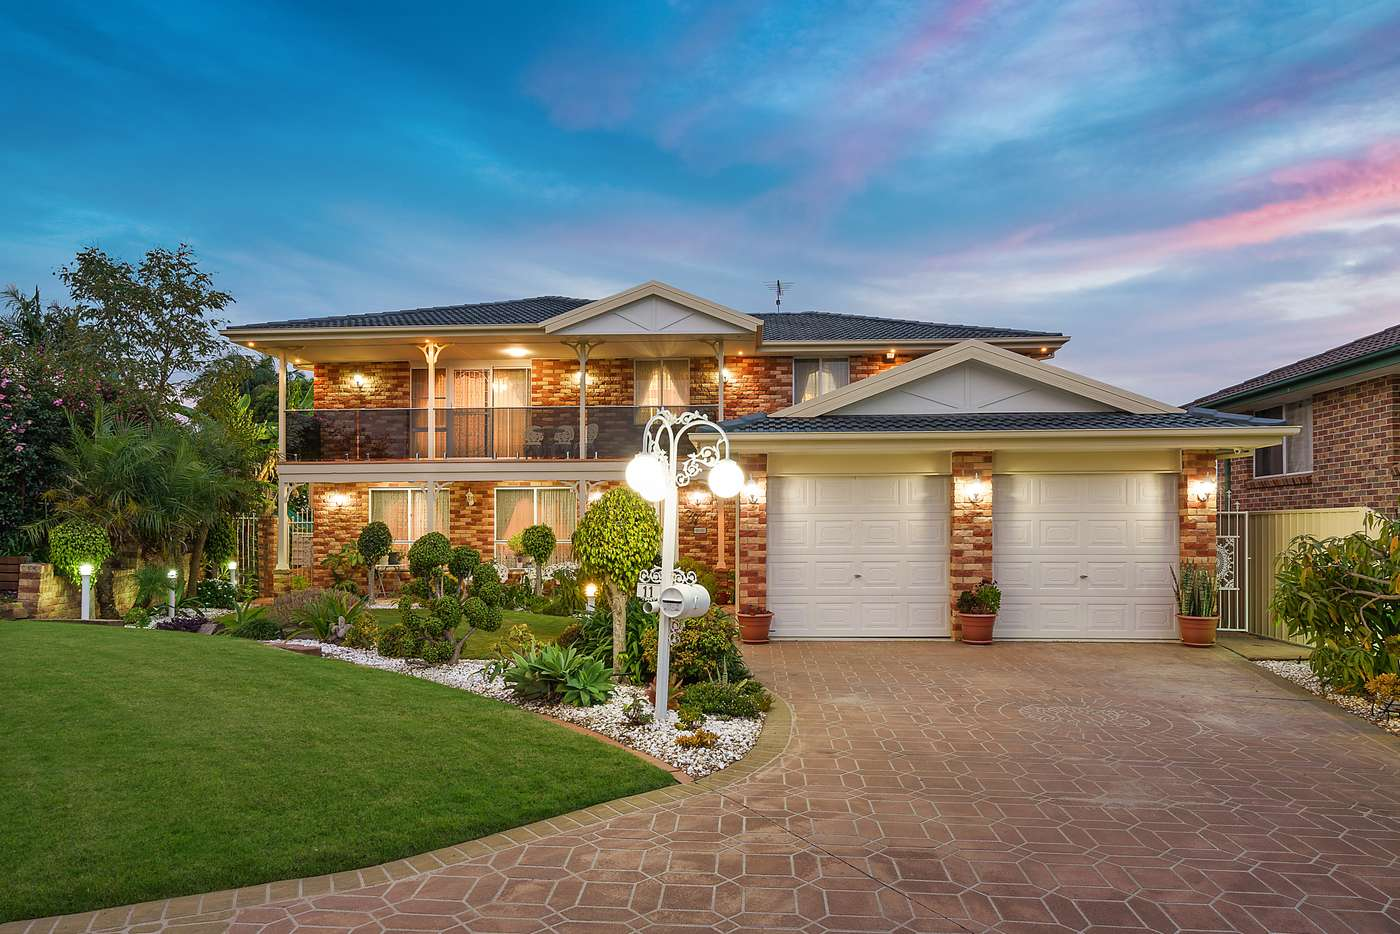 Main view of Homely house listing, 11 Whitsunday Circuit, Green Valley NSW 2168